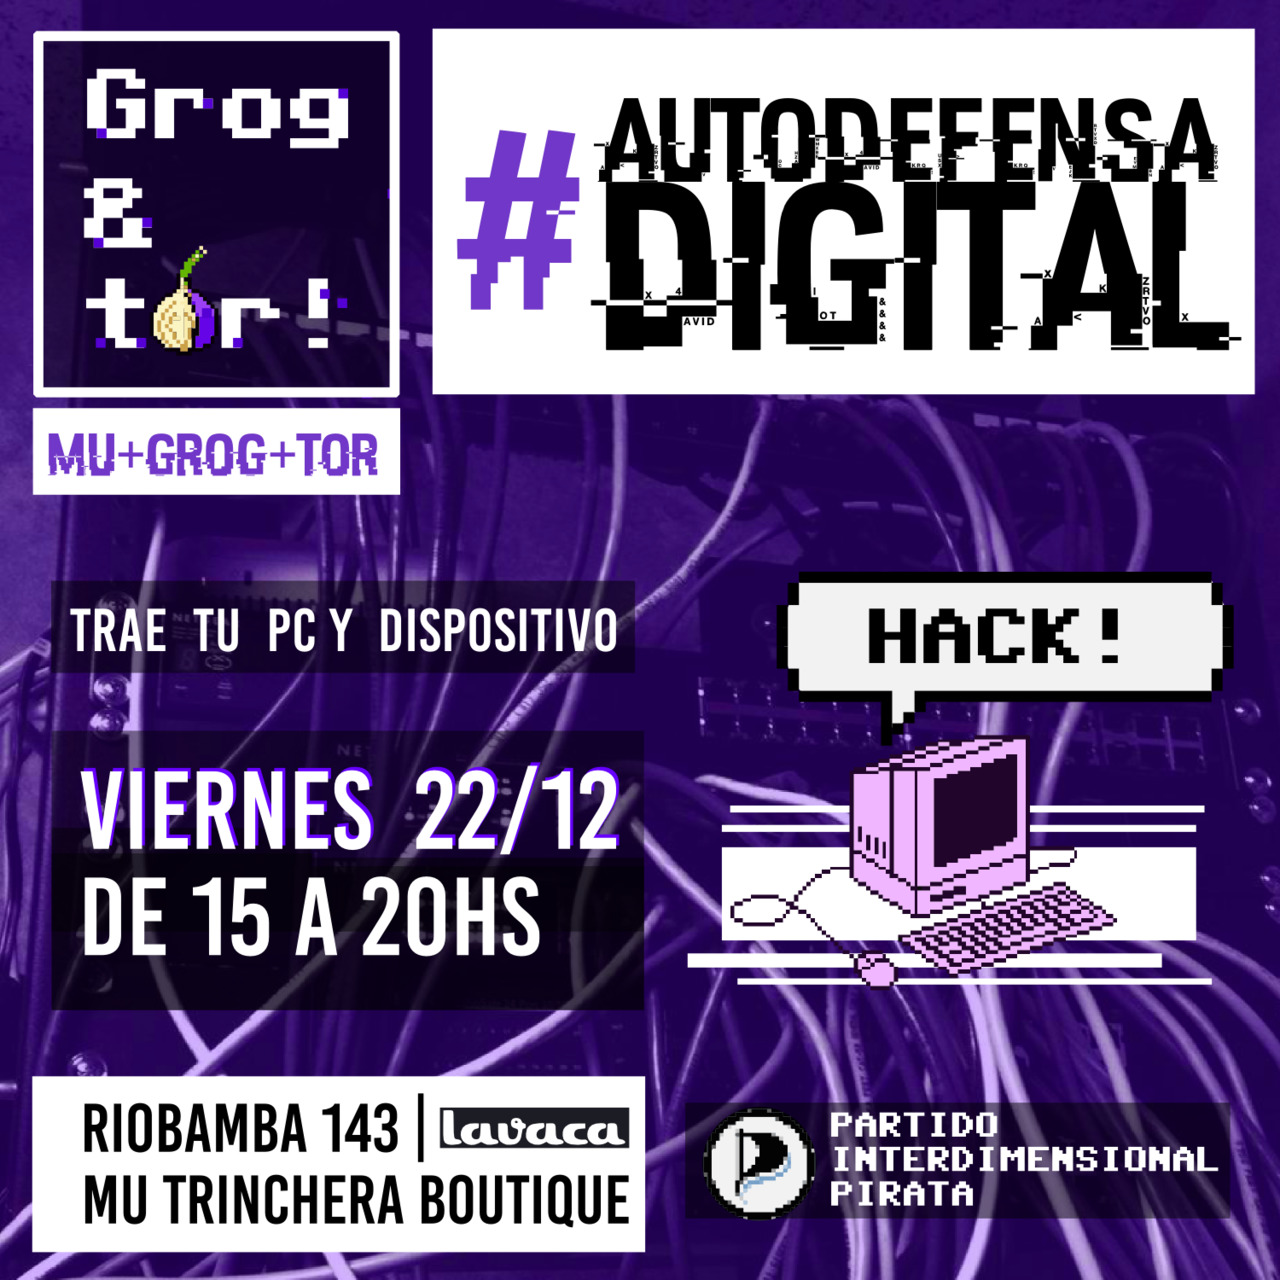 Grog&Tor: Autodefensa digital en Mu Trinchera Boutique